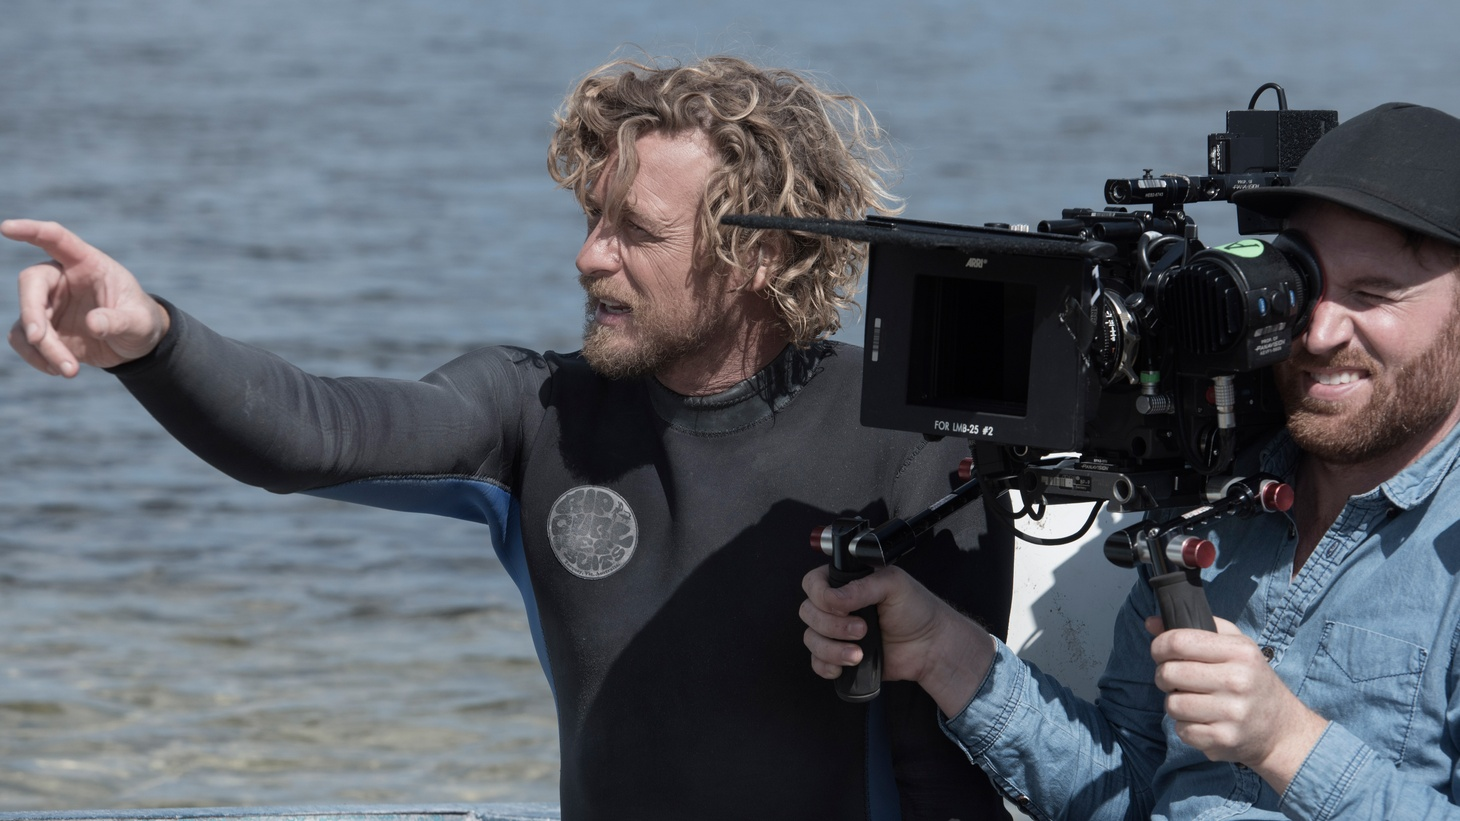 After seven seasons starring in the CBS series 'The Mentalist,' Simon Baker made his feature directing debut with the coming-of-age film, 'Breath.'